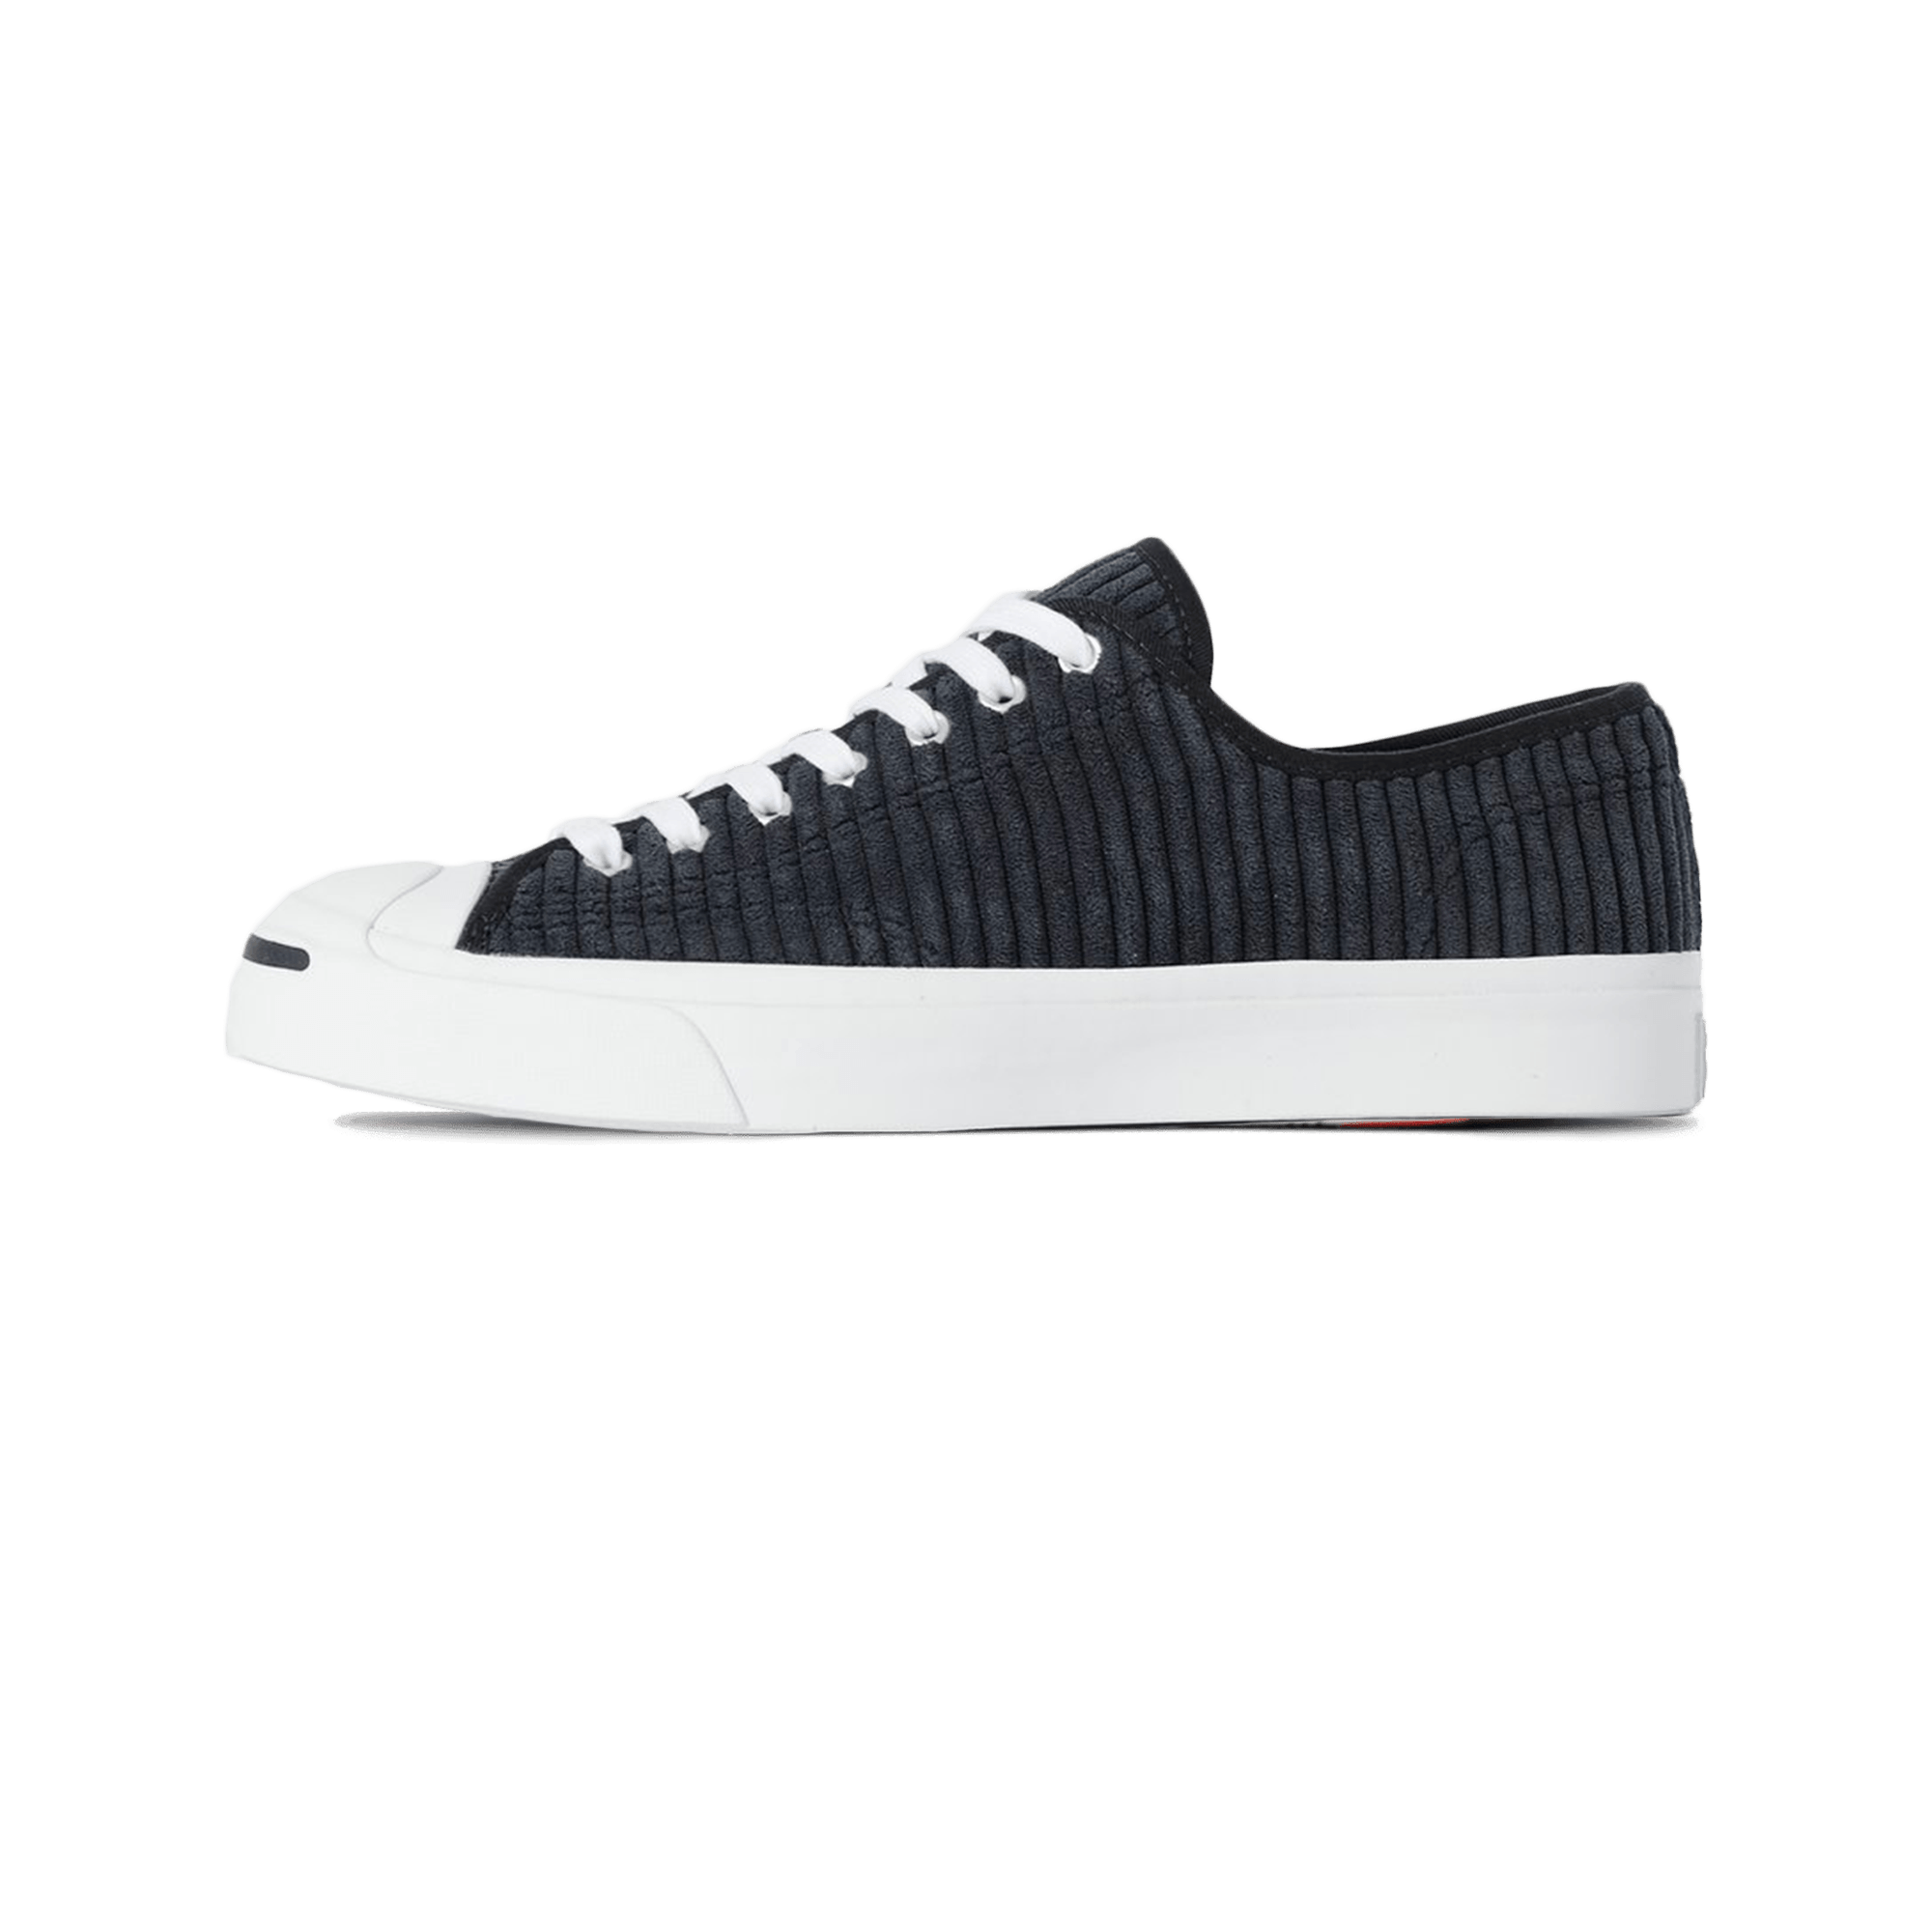 converse jack purcell france